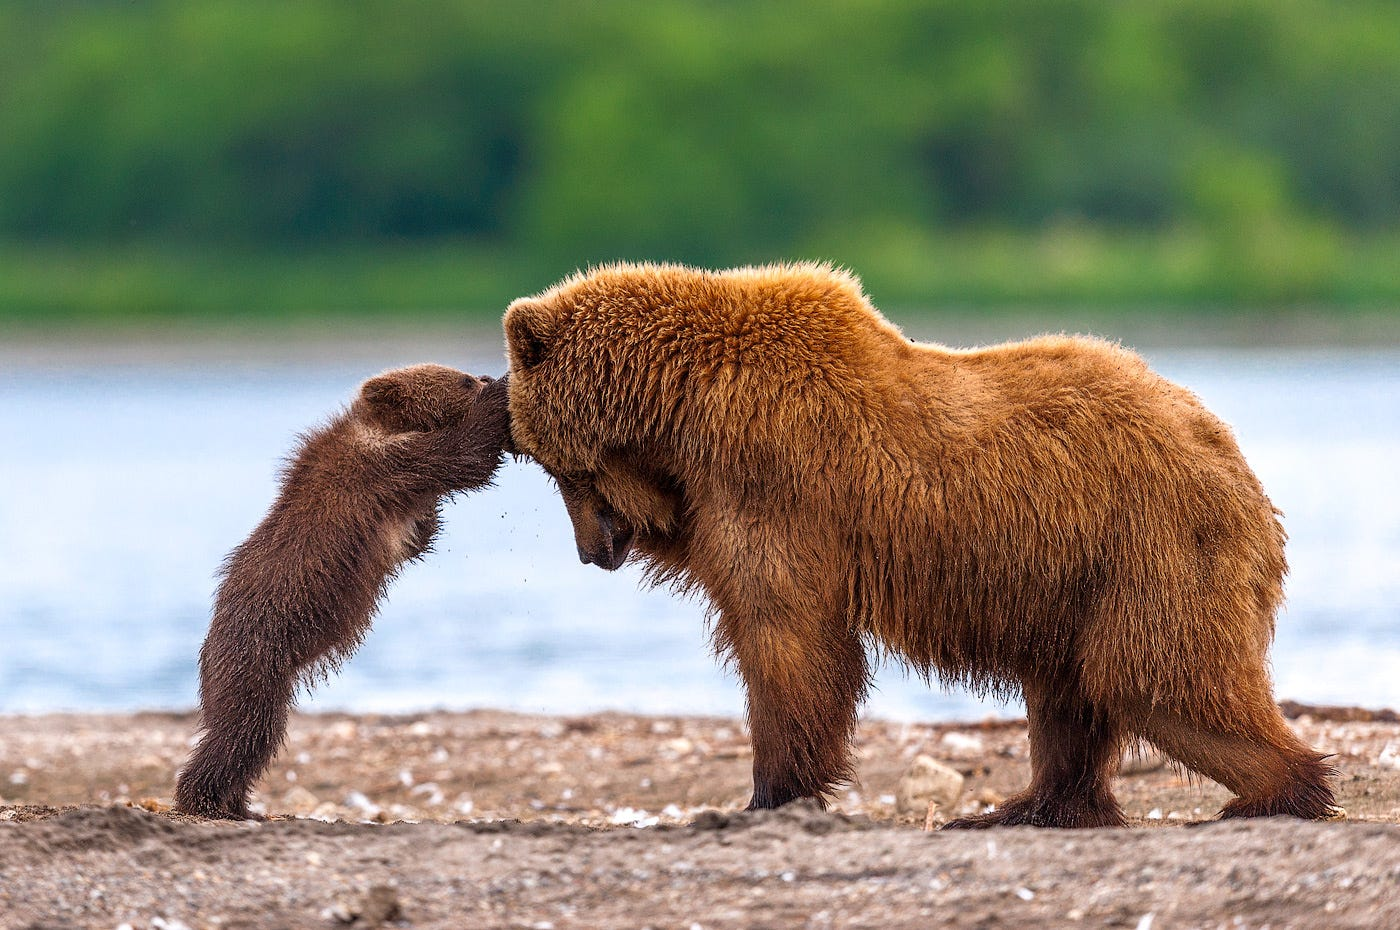 Ungentle charm of Kamchatka bears in photos by Sergey Ivanov - 27